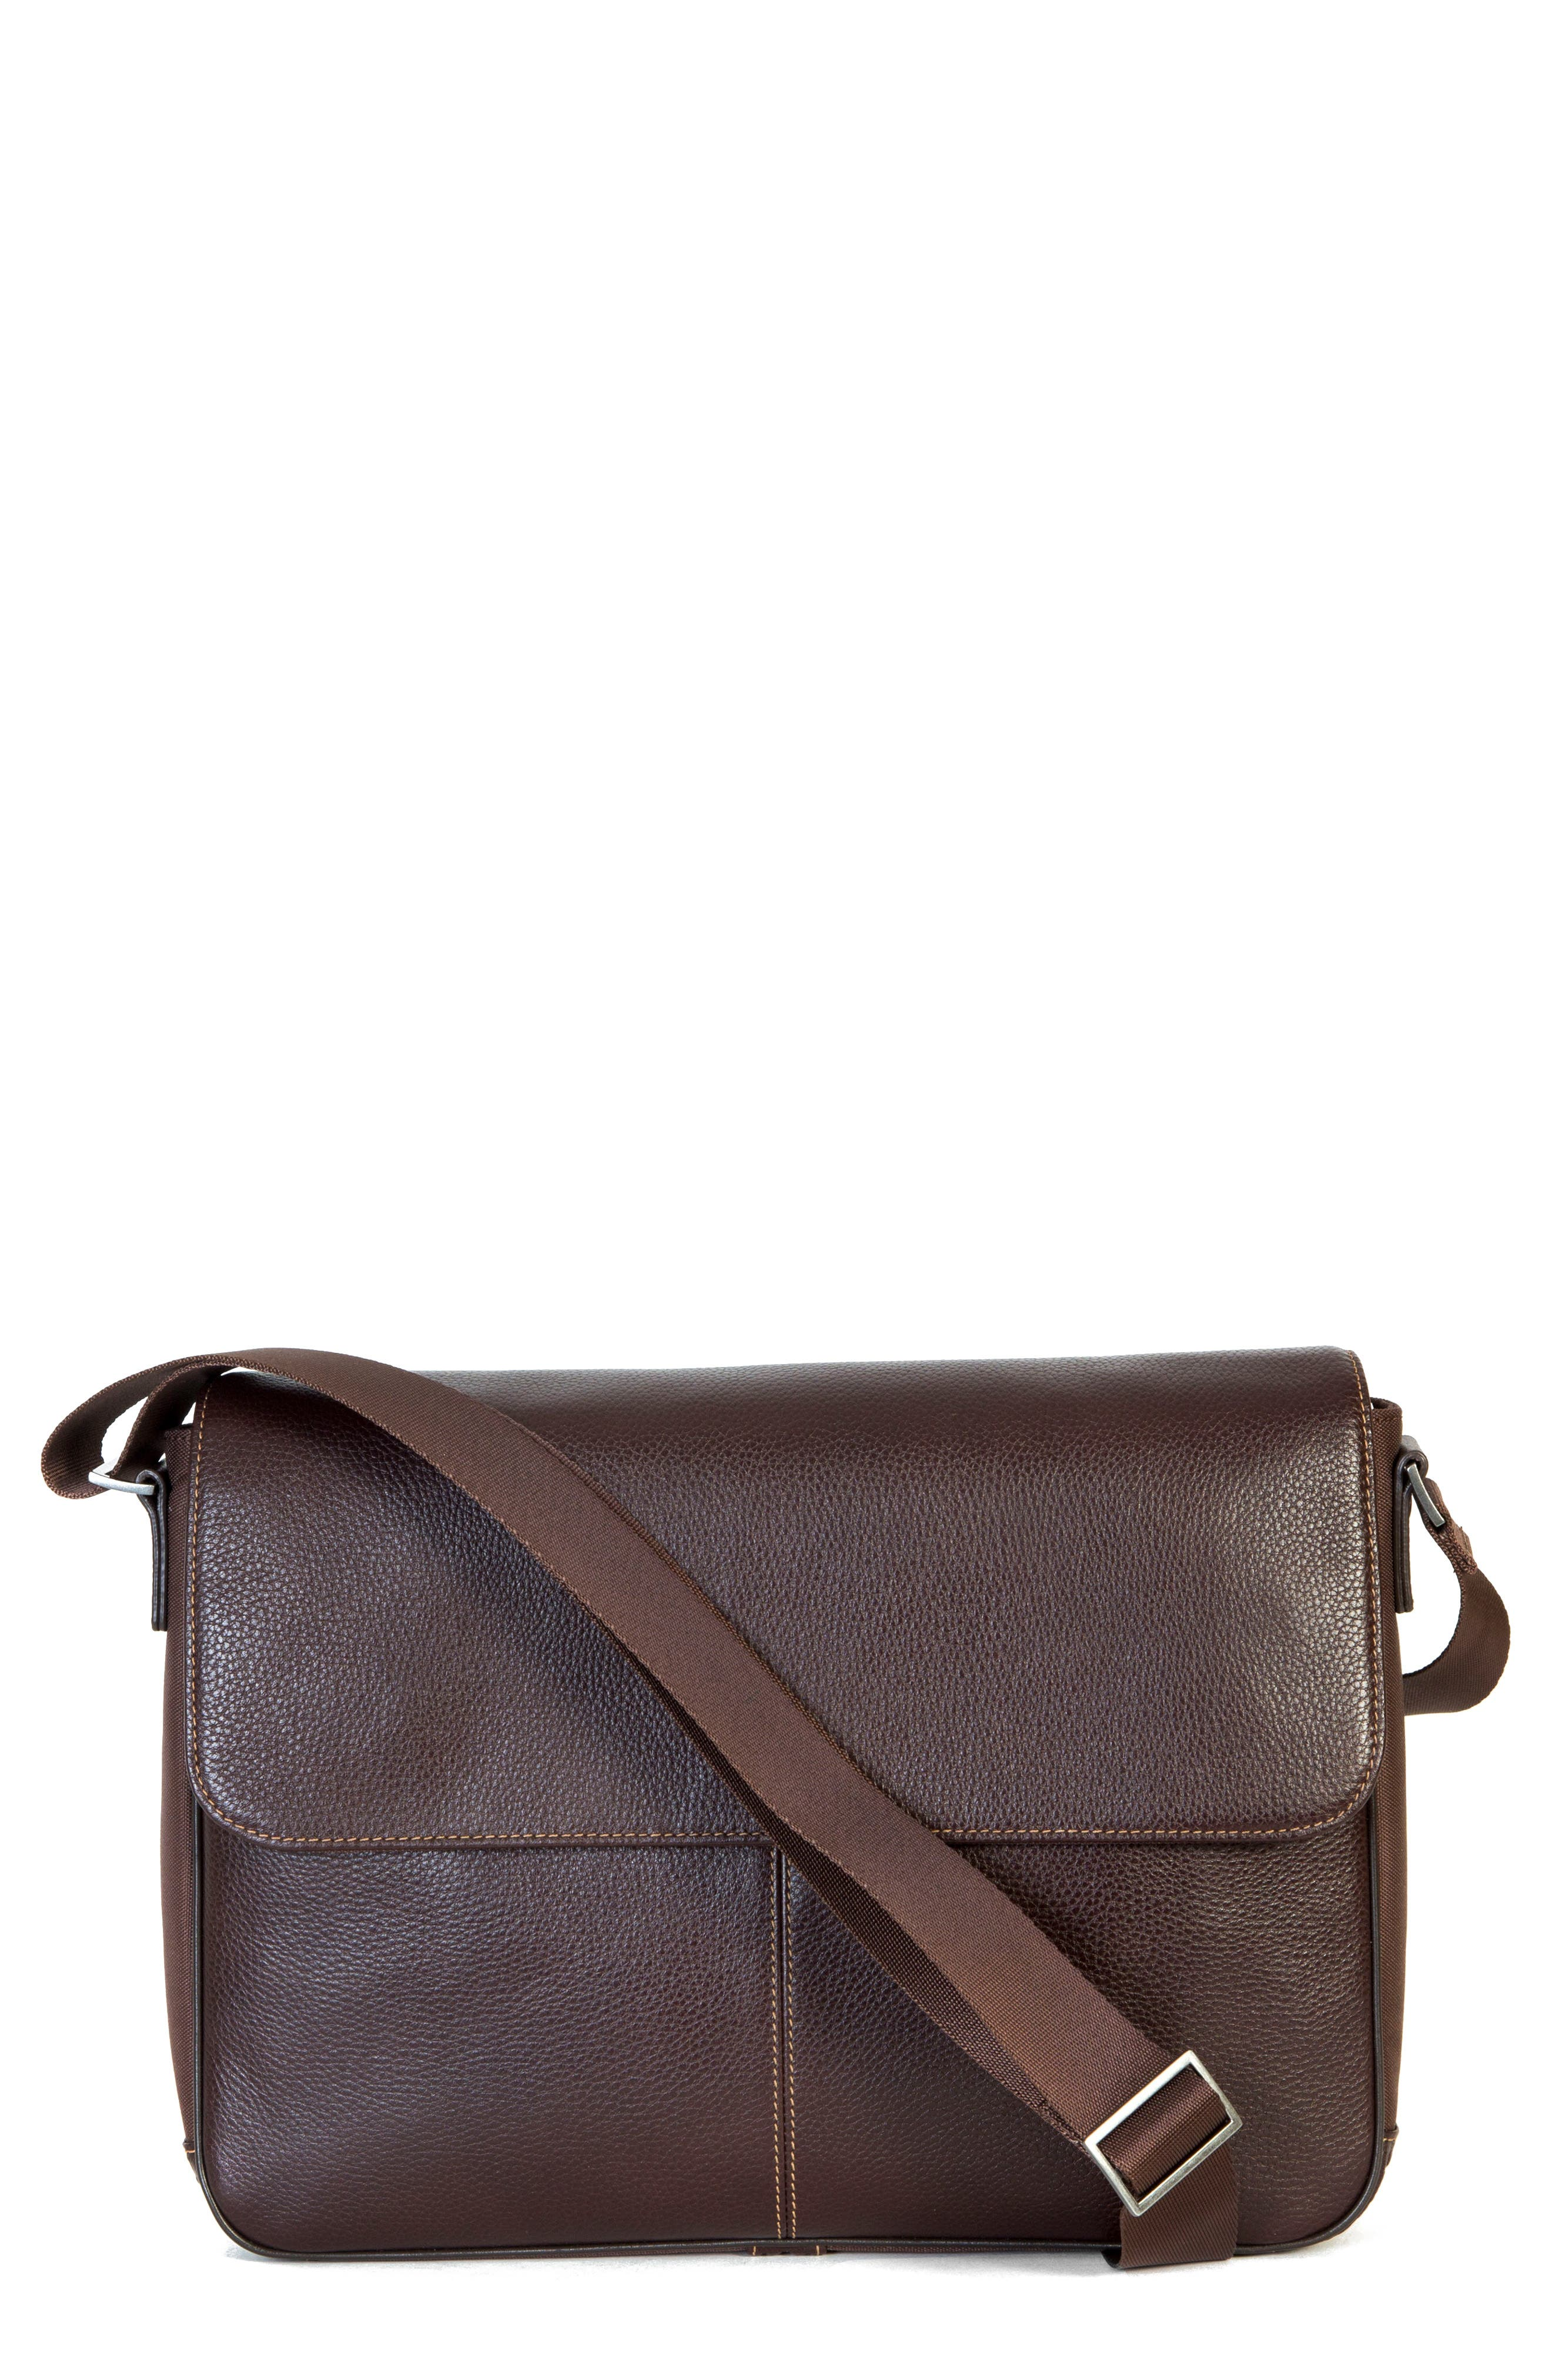 Tyler Leather Messenger Bag,                         Main,                         color, Coffee